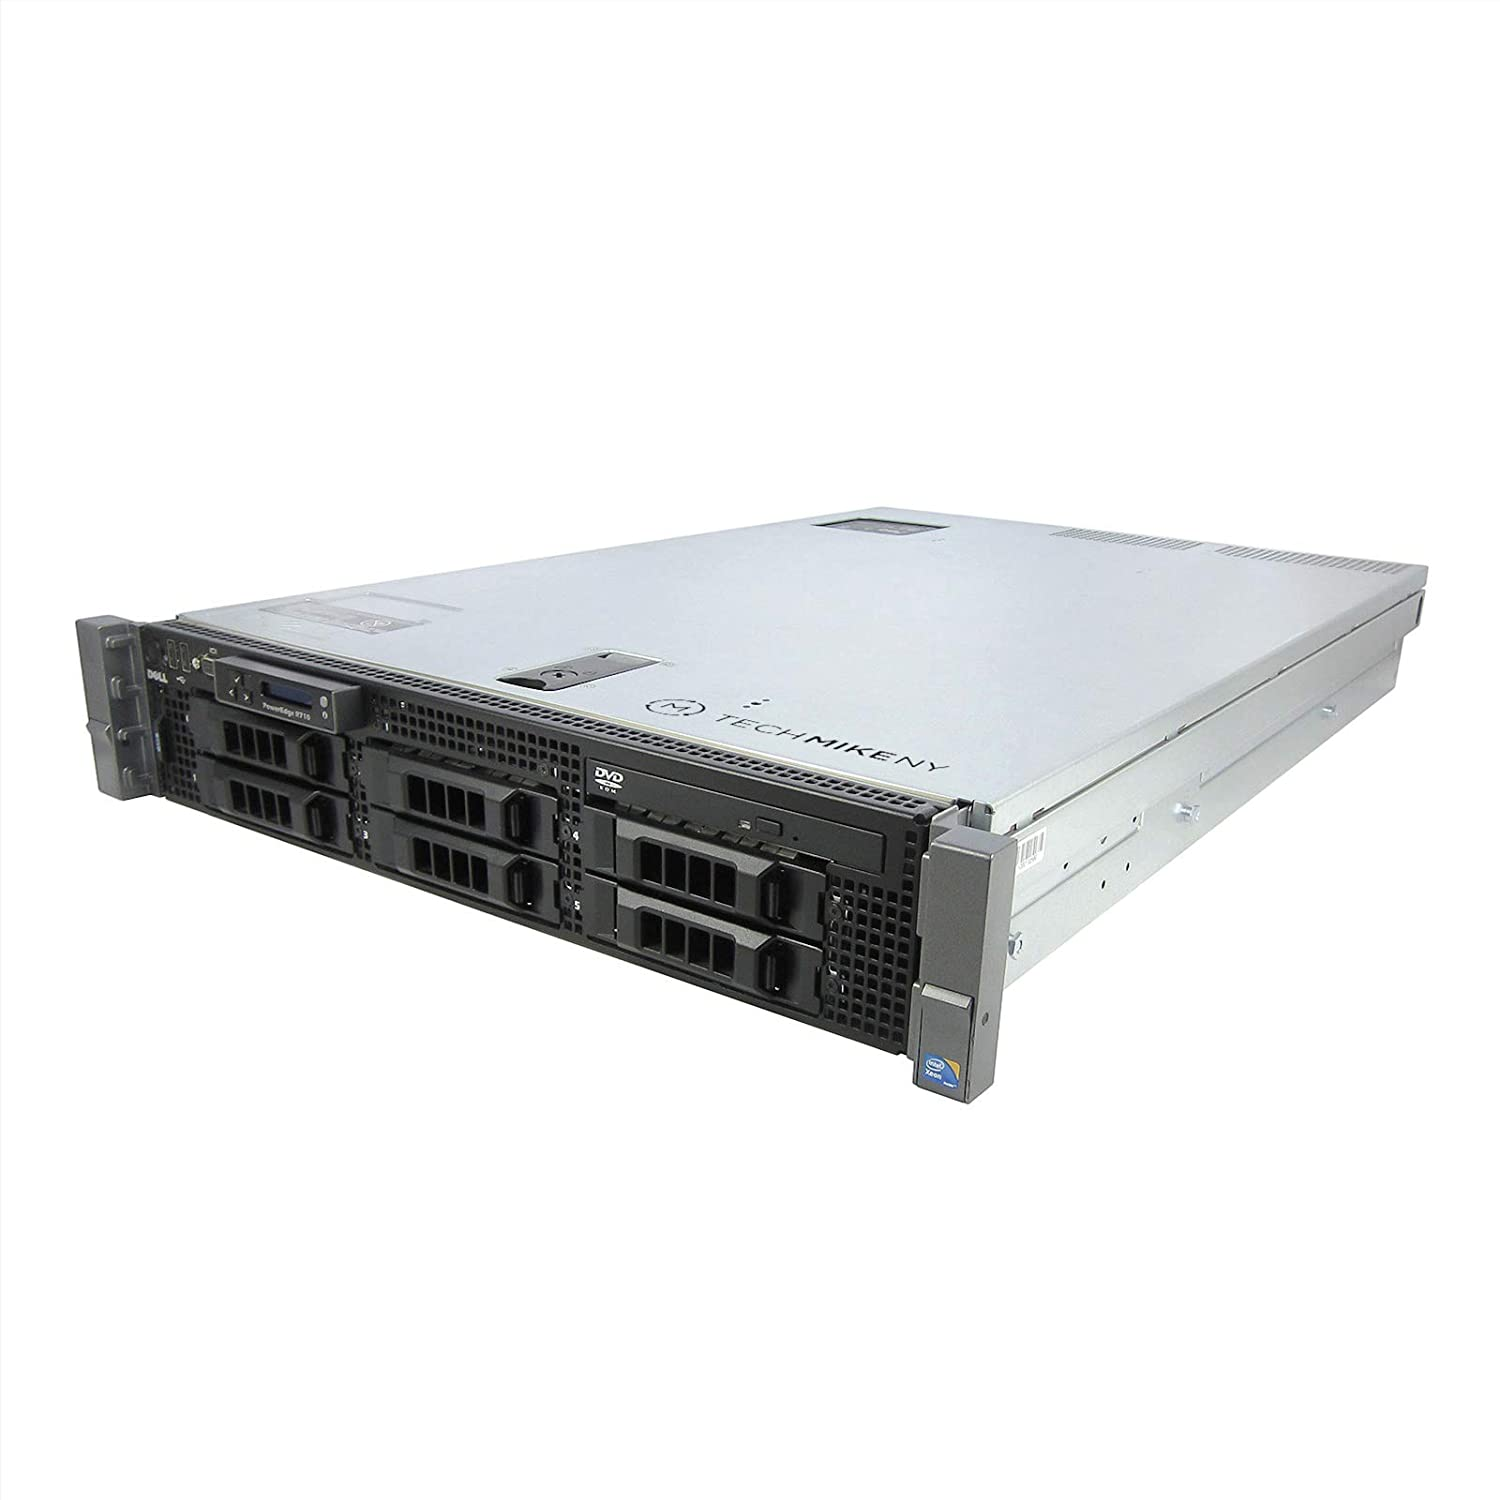 High-End DELL PowerEdge R710 Server 2x 2.80Ghz X5660 6C 64GB (Certified Refurbished) Dell Computers Dell PowerEdge R710 Gen I